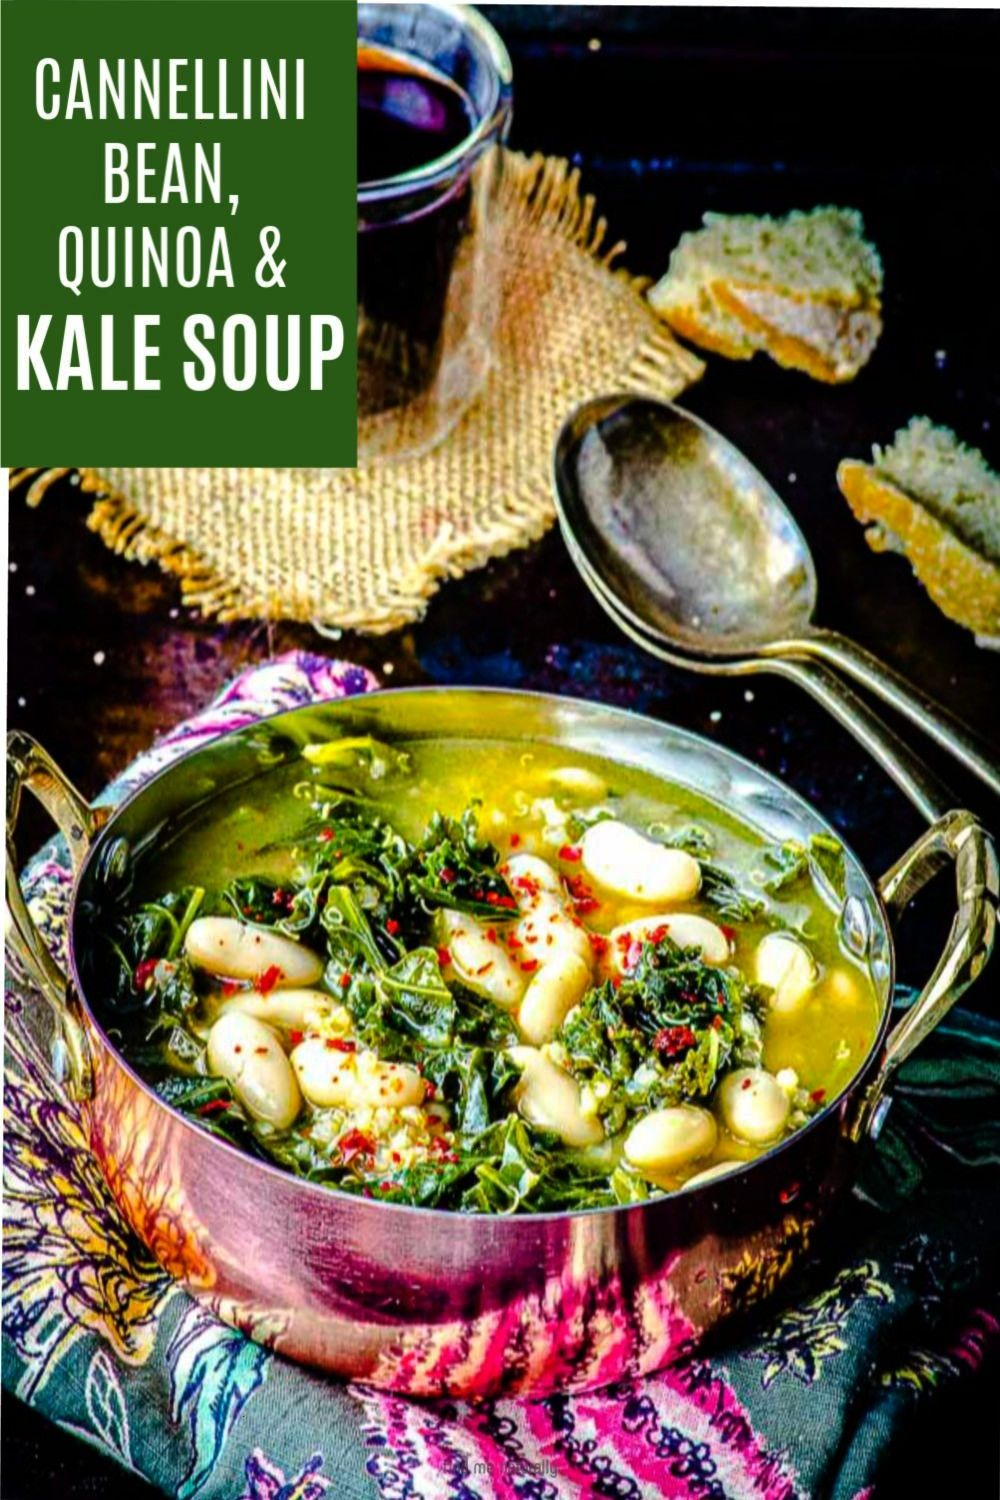 warm, filling and comforting this kale soup with cannellini beans and quinoa will keep you full for